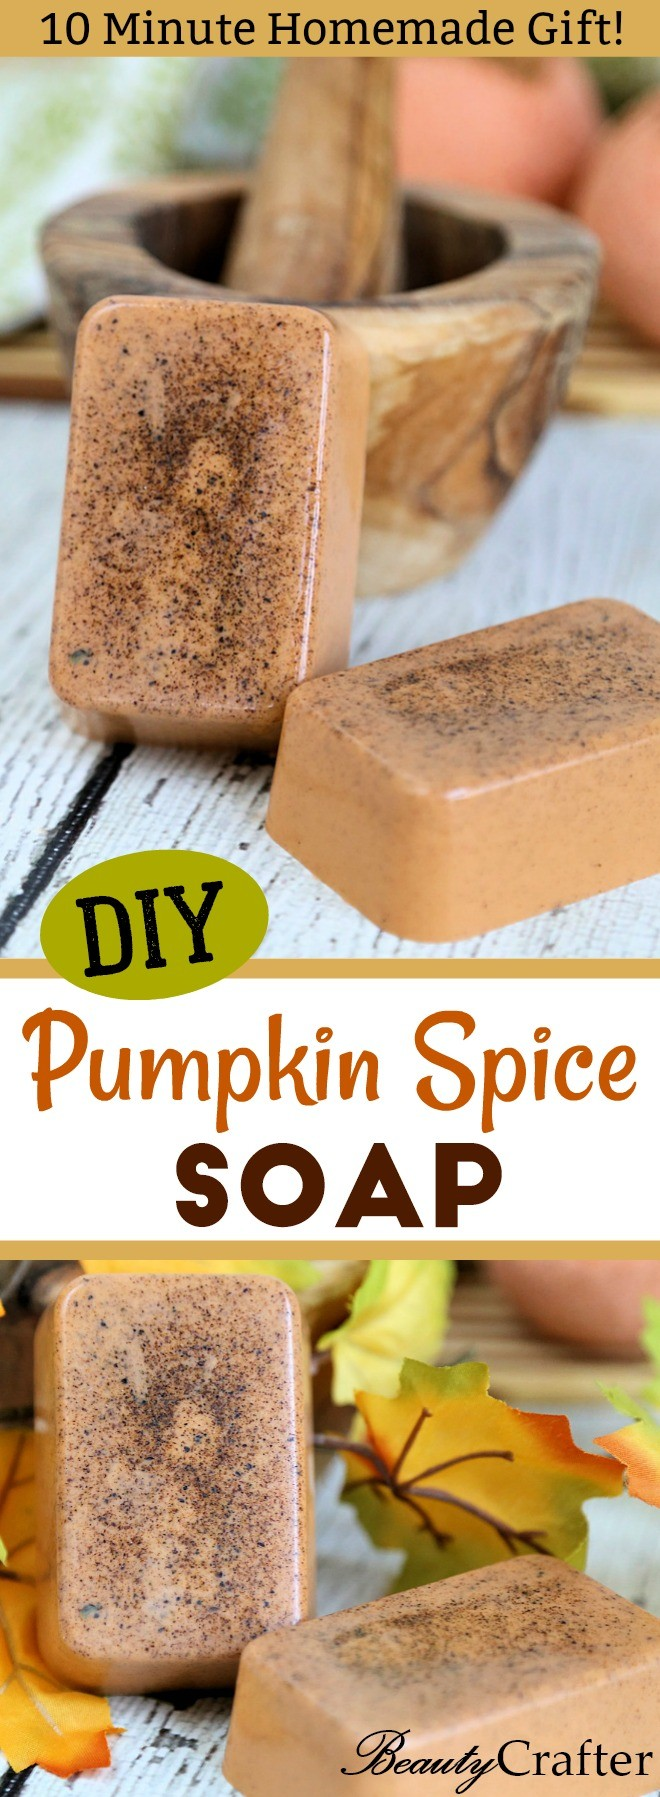 Pumpkin Spice Soap DIY Recipe - Easy Fall Craft that makes a great gift.